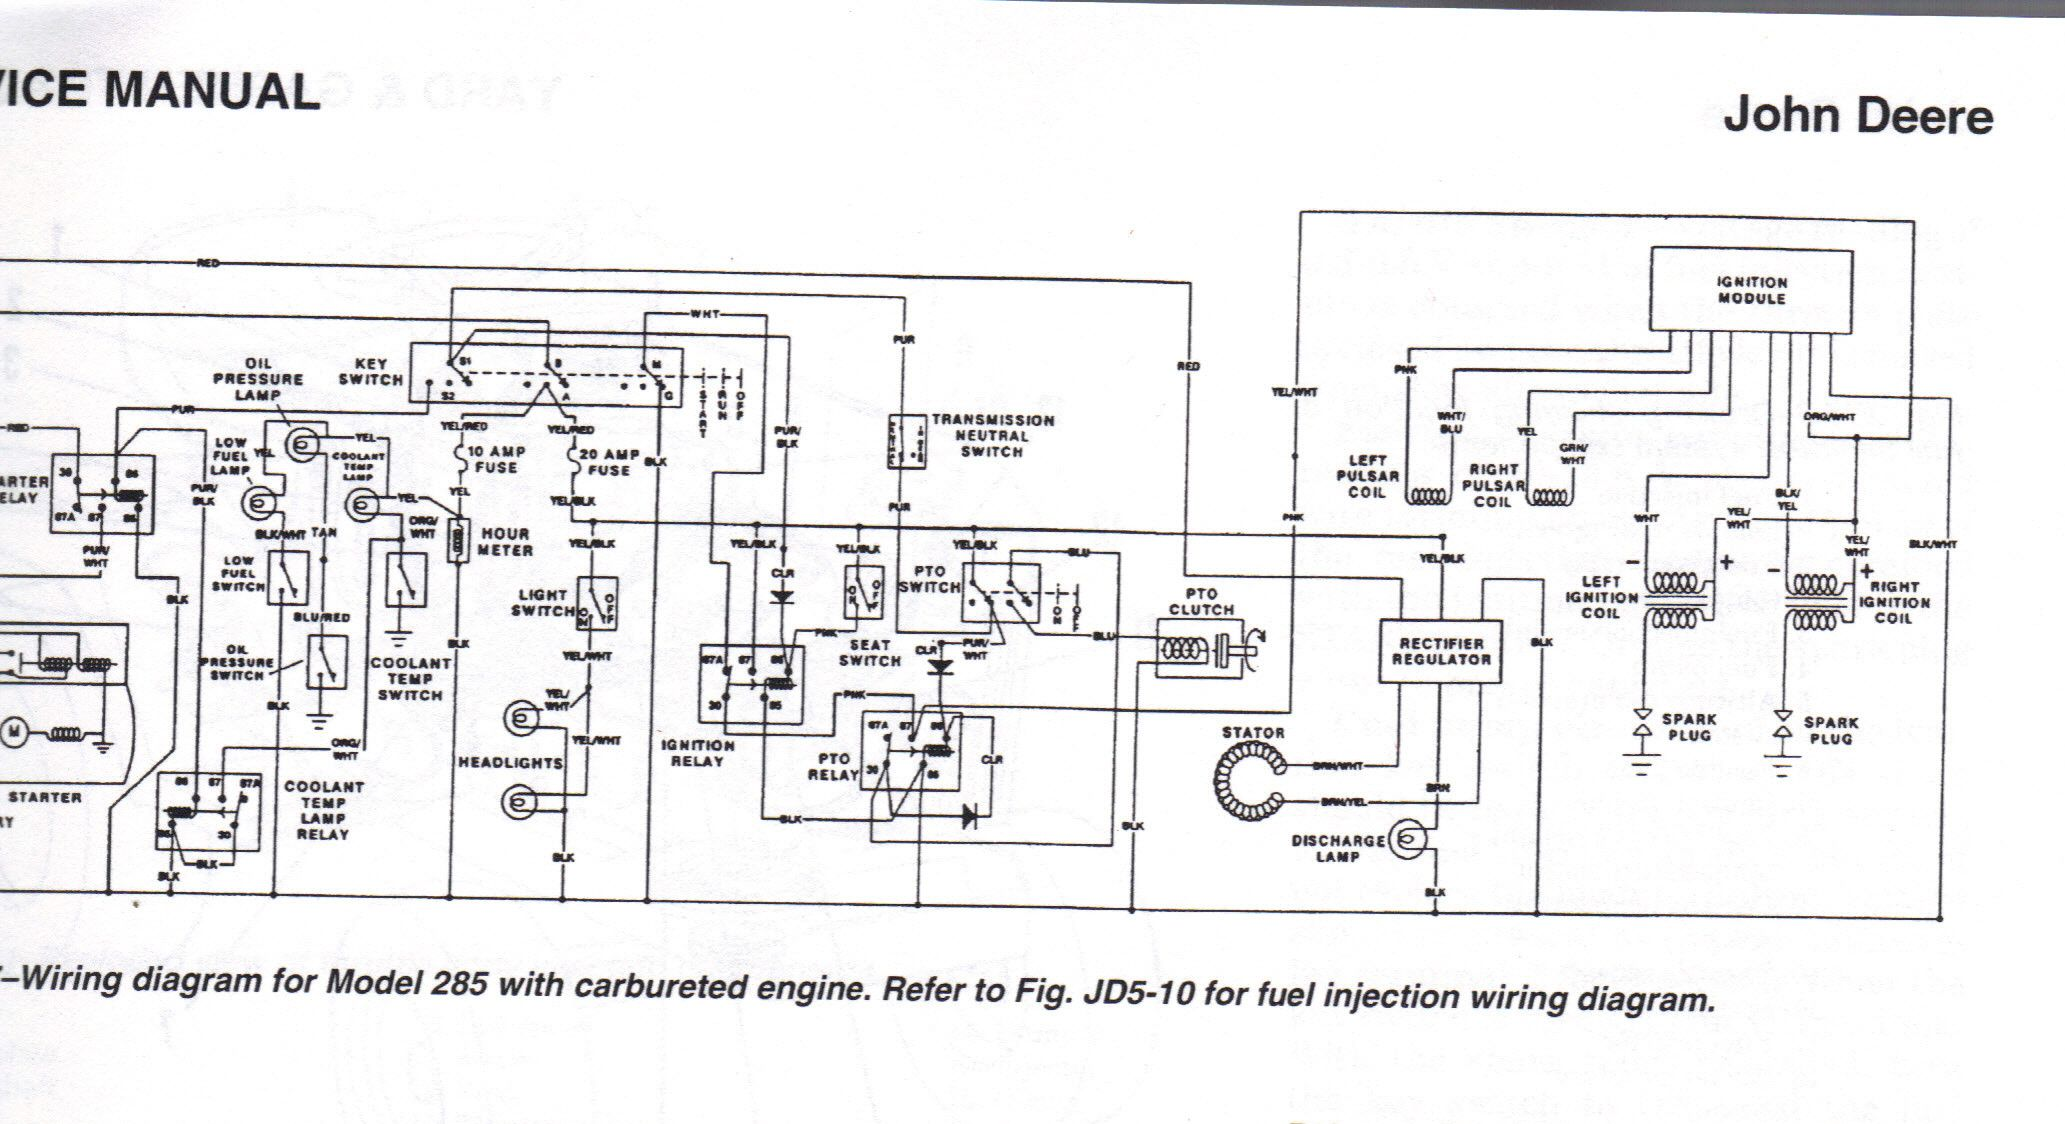 hight resolution of john deere wiring diagram to service manual for model 285 with rhjohn deere wiring diagram to